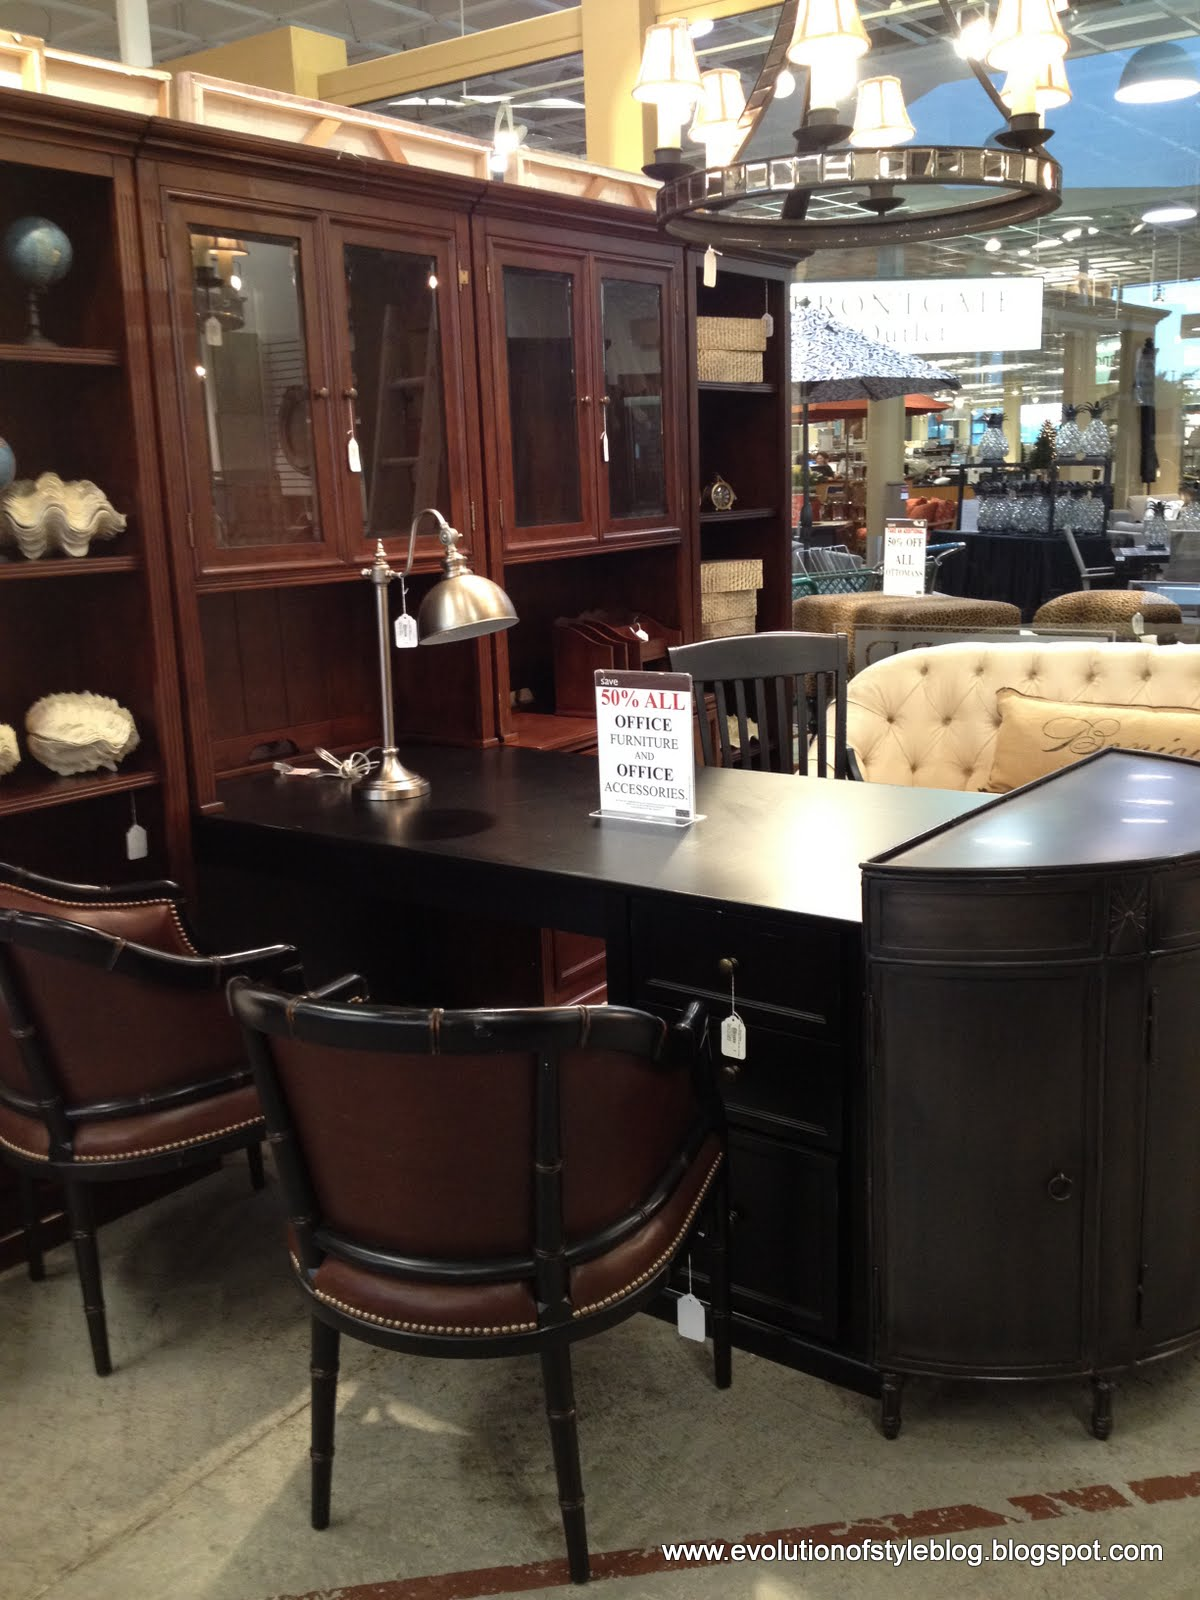 A Similar Table To What I Saw At Pottery Barn Outlet